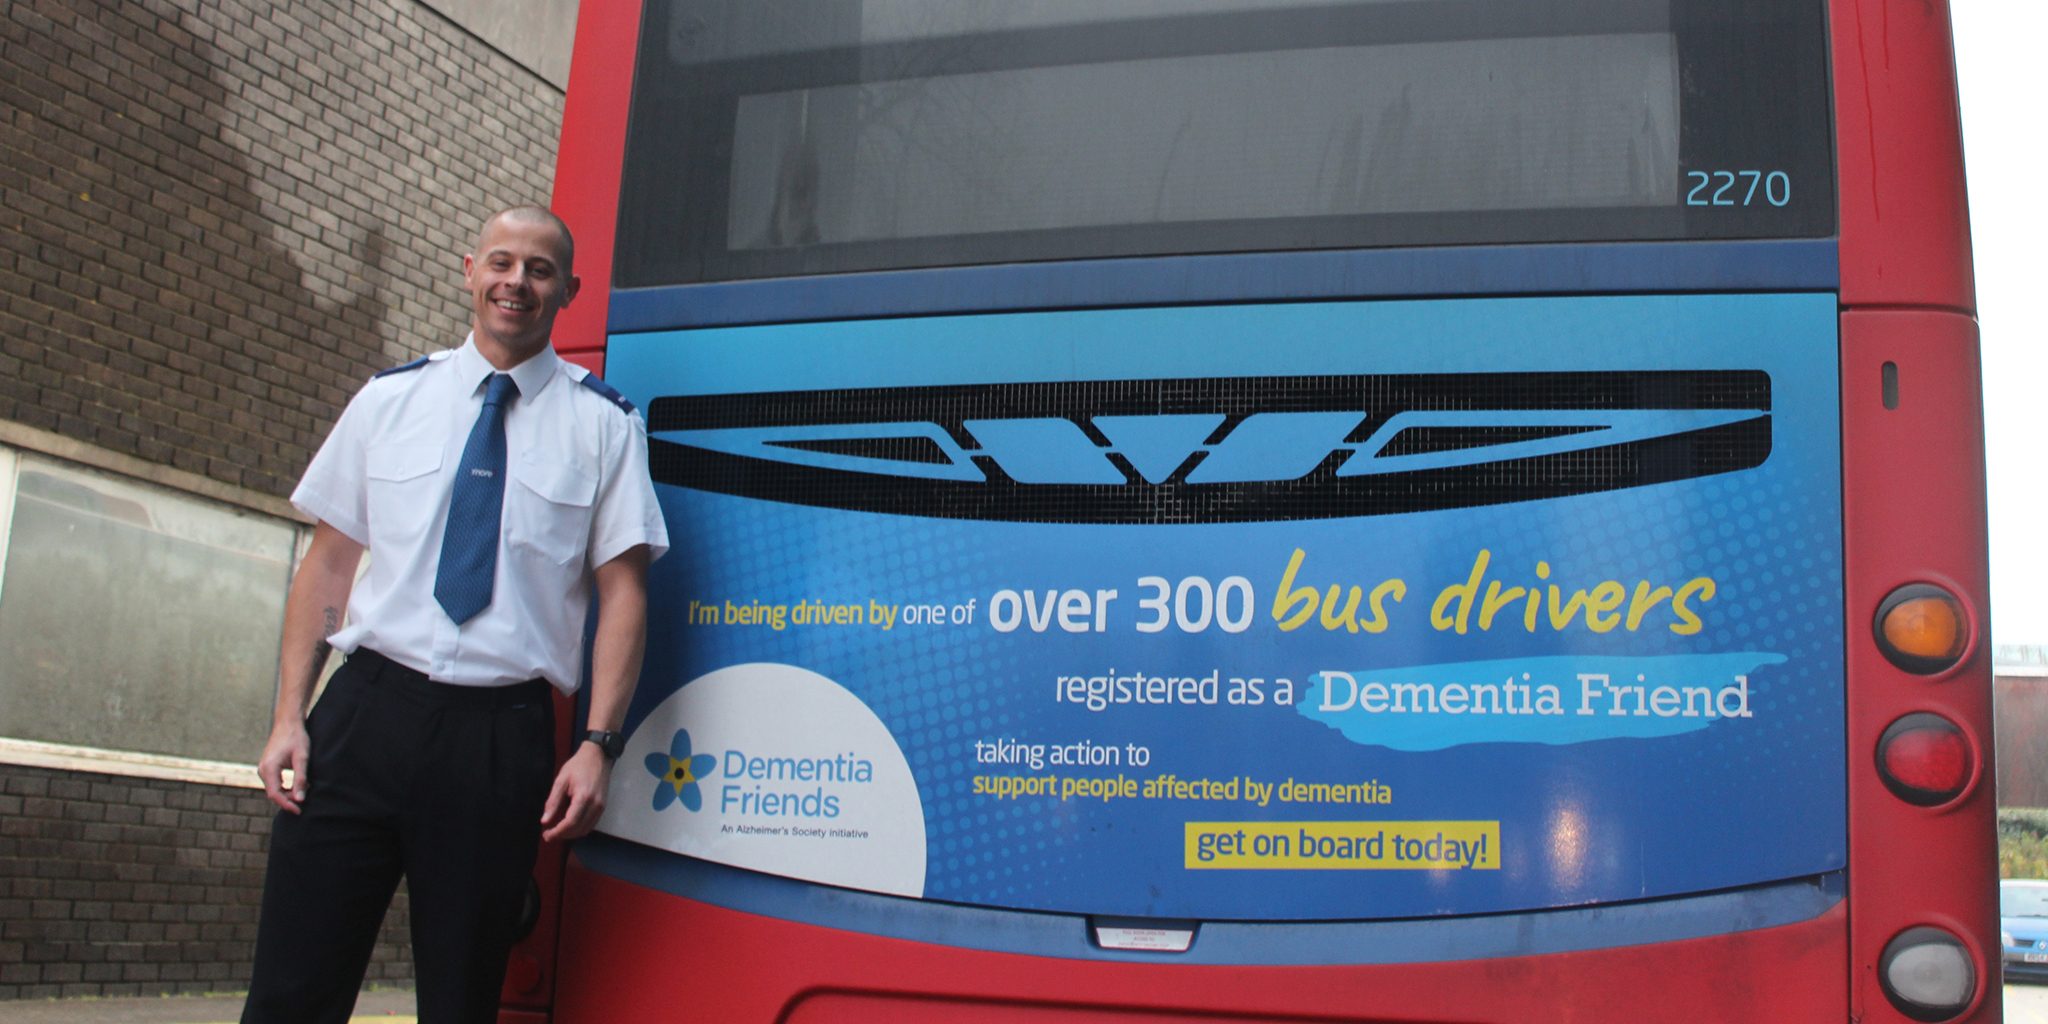 Photo of a morebus driver standing next to a bus promoting dementia friendly bus drivers